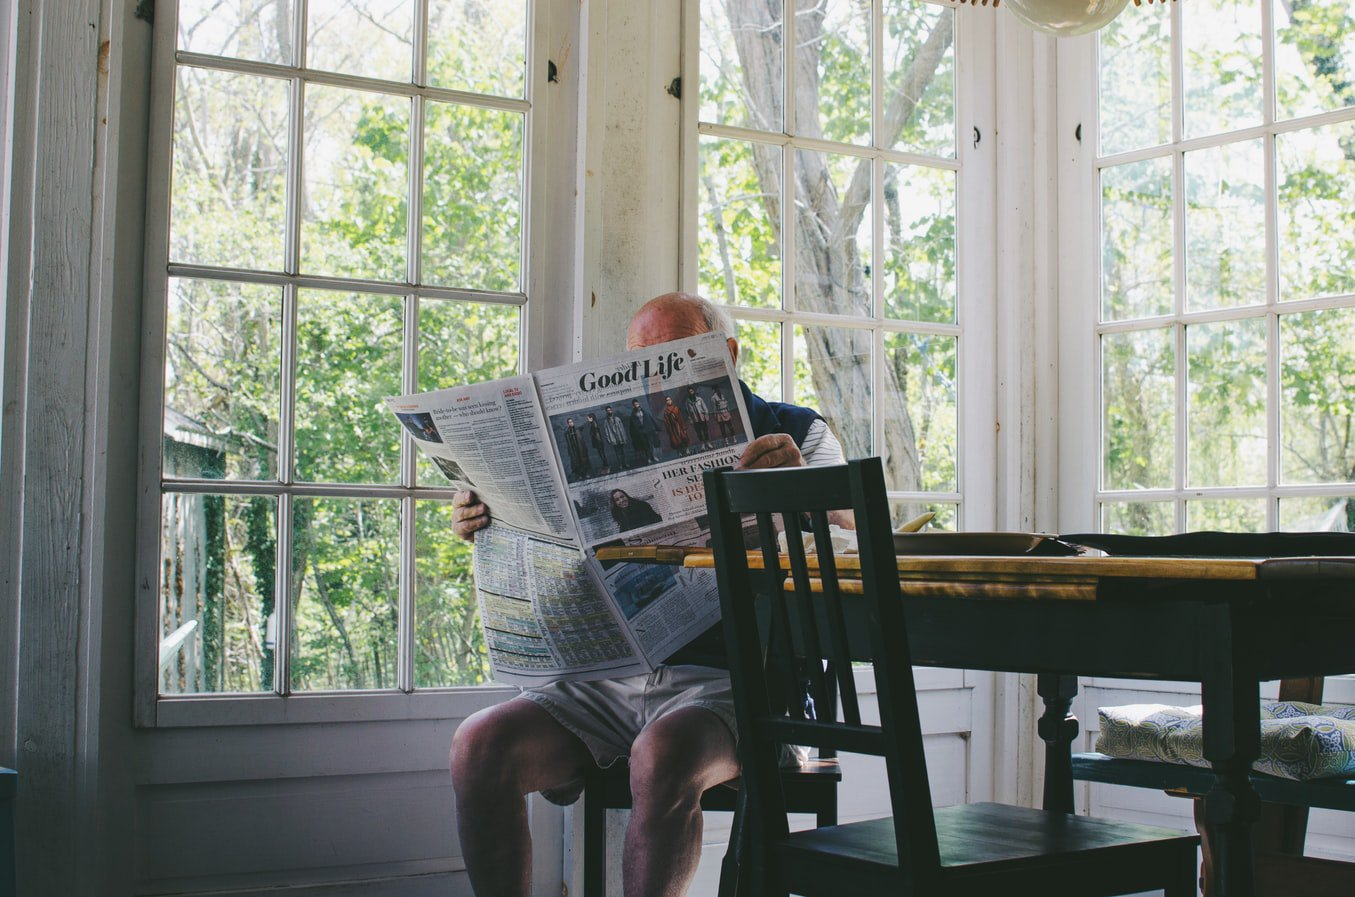 An older man with early stage alzheimers disease sitting at the table reading the newspaper